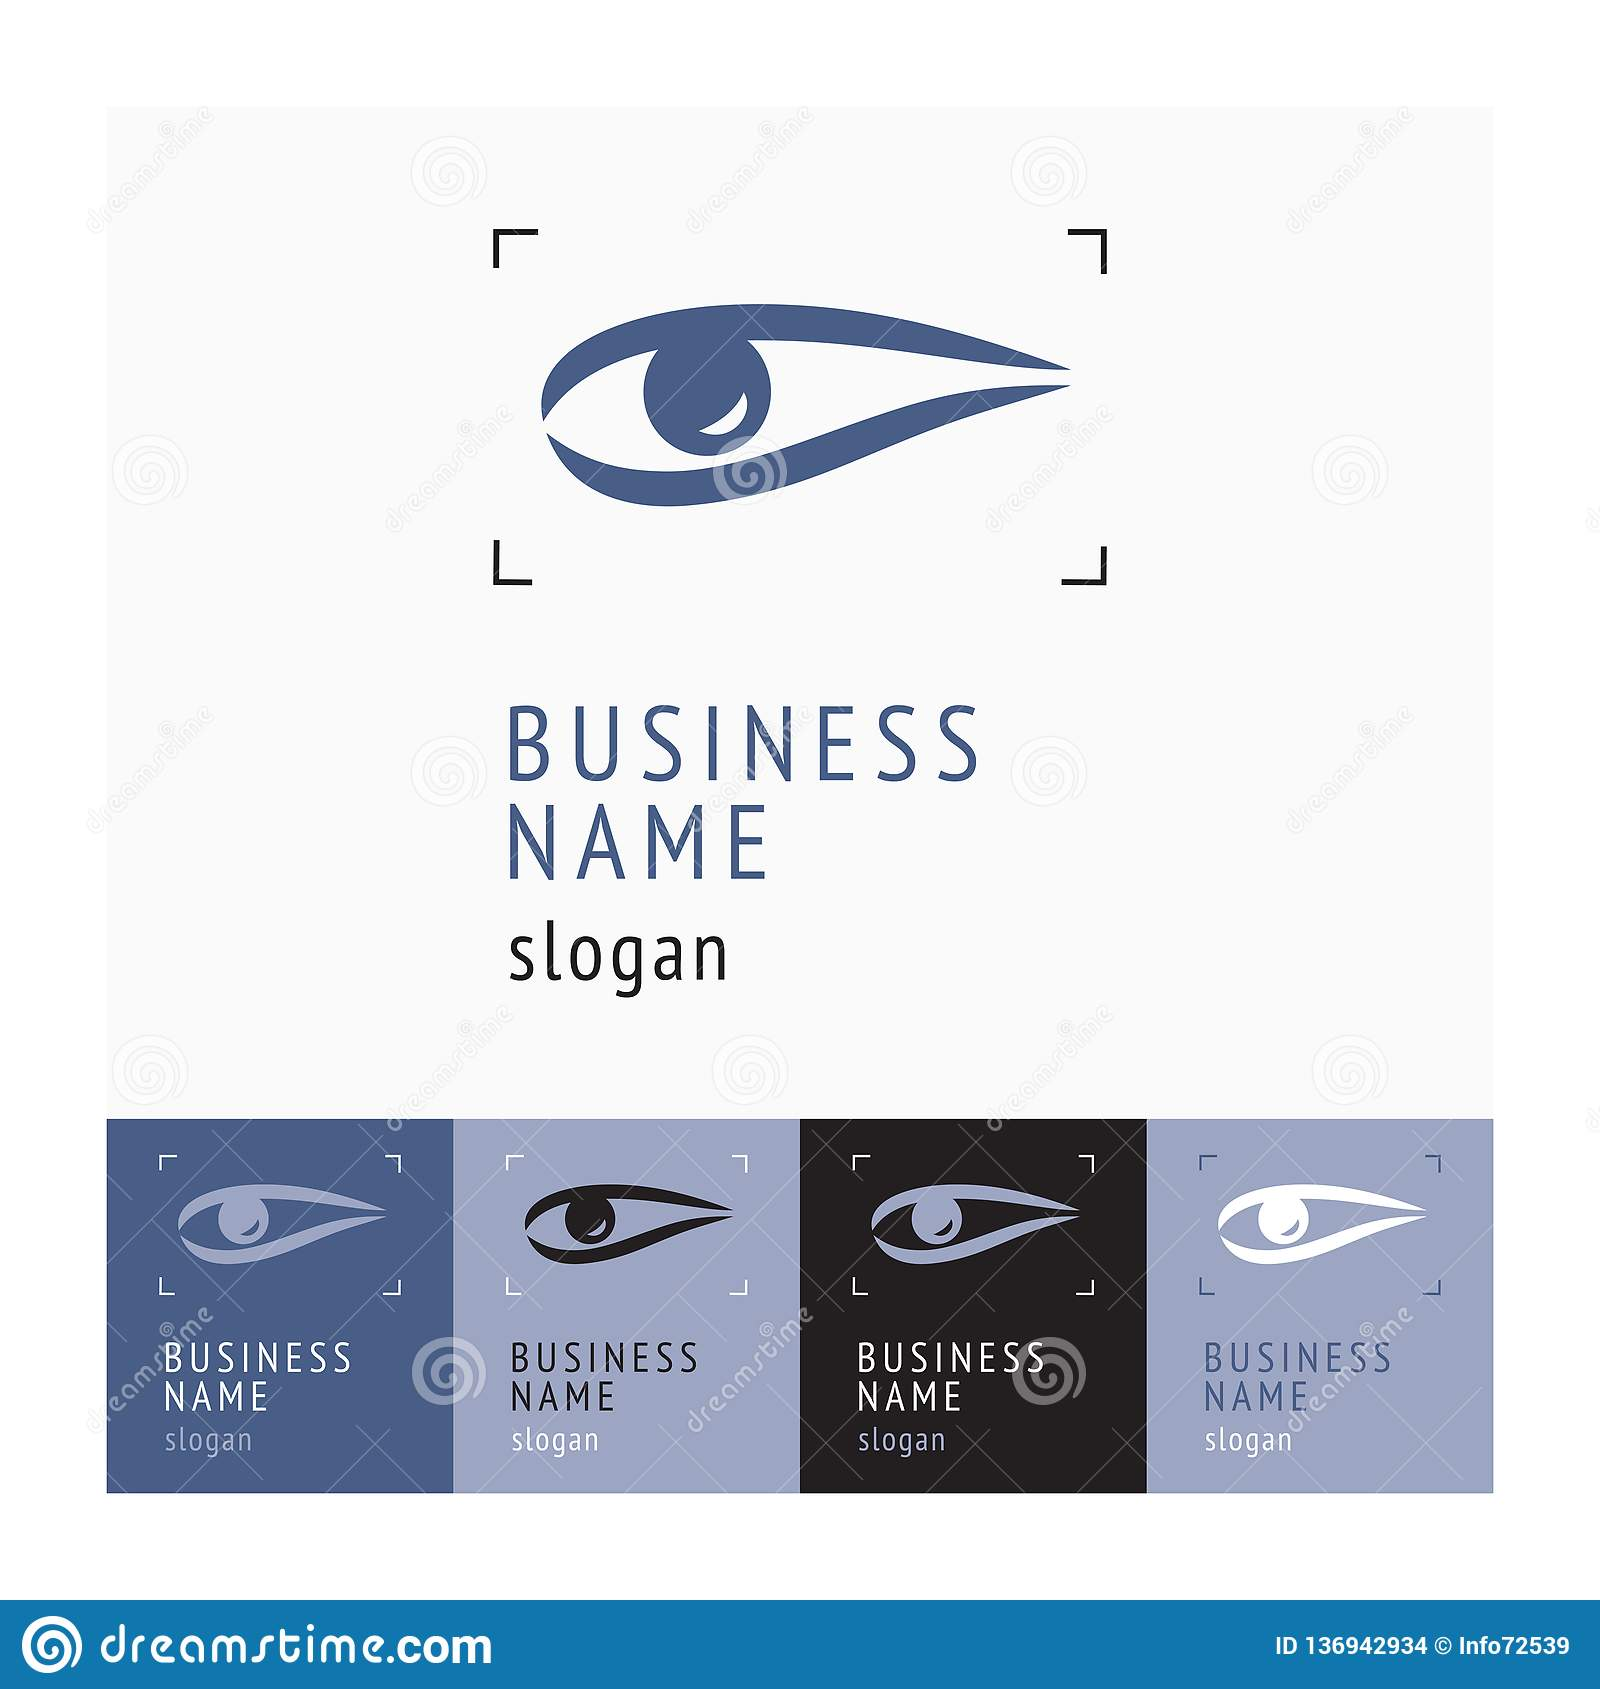 Company Logo With An Eye Icon  The Emblem Of The